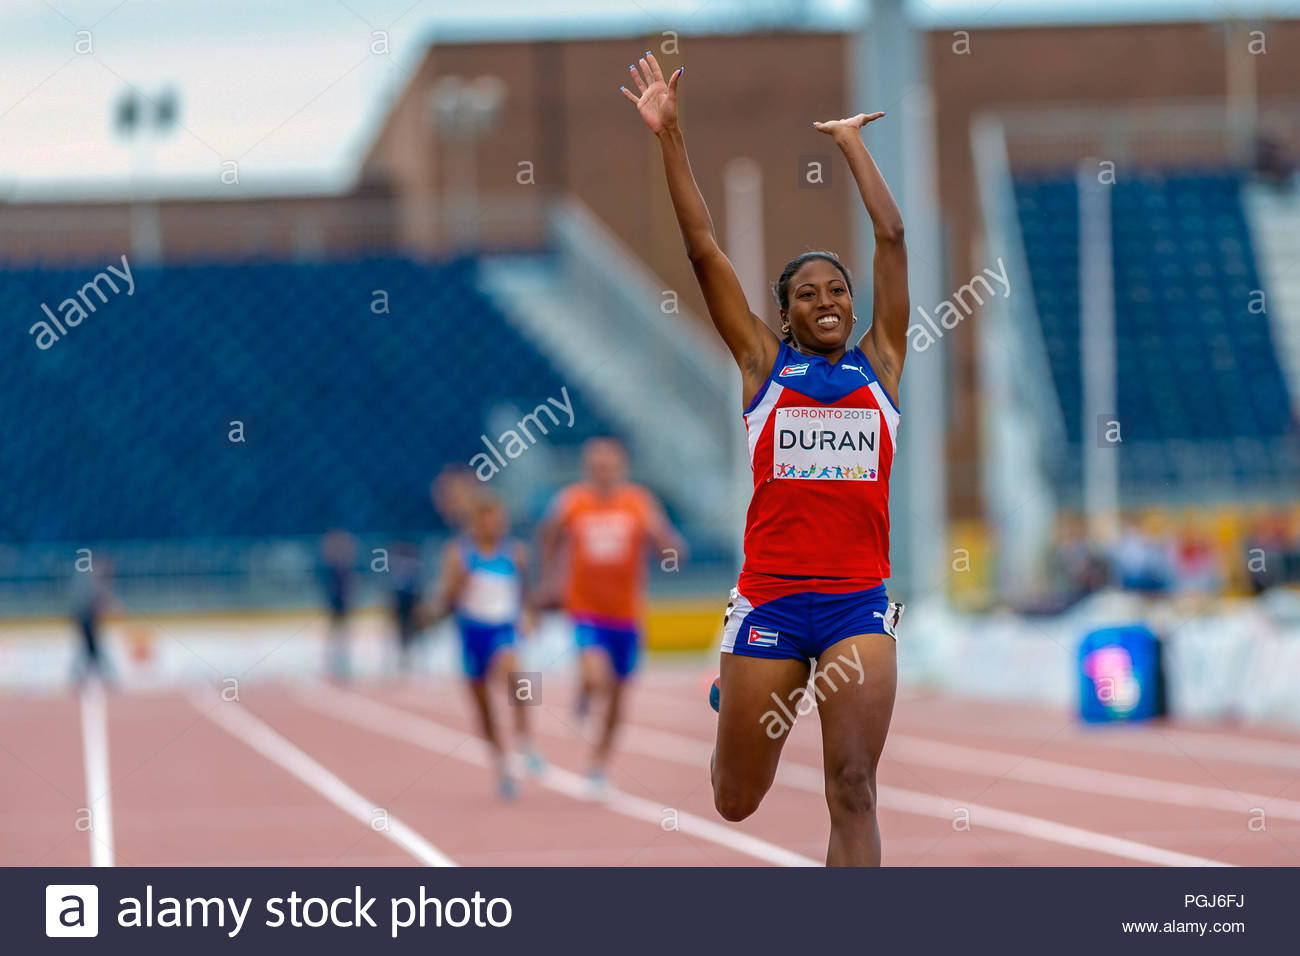 Ormara Duran,Cuban paralympic athlete wins gold. Athletics competition and medals ceremonies during the Toronto Parapan Am Games 2015 - Stock Image